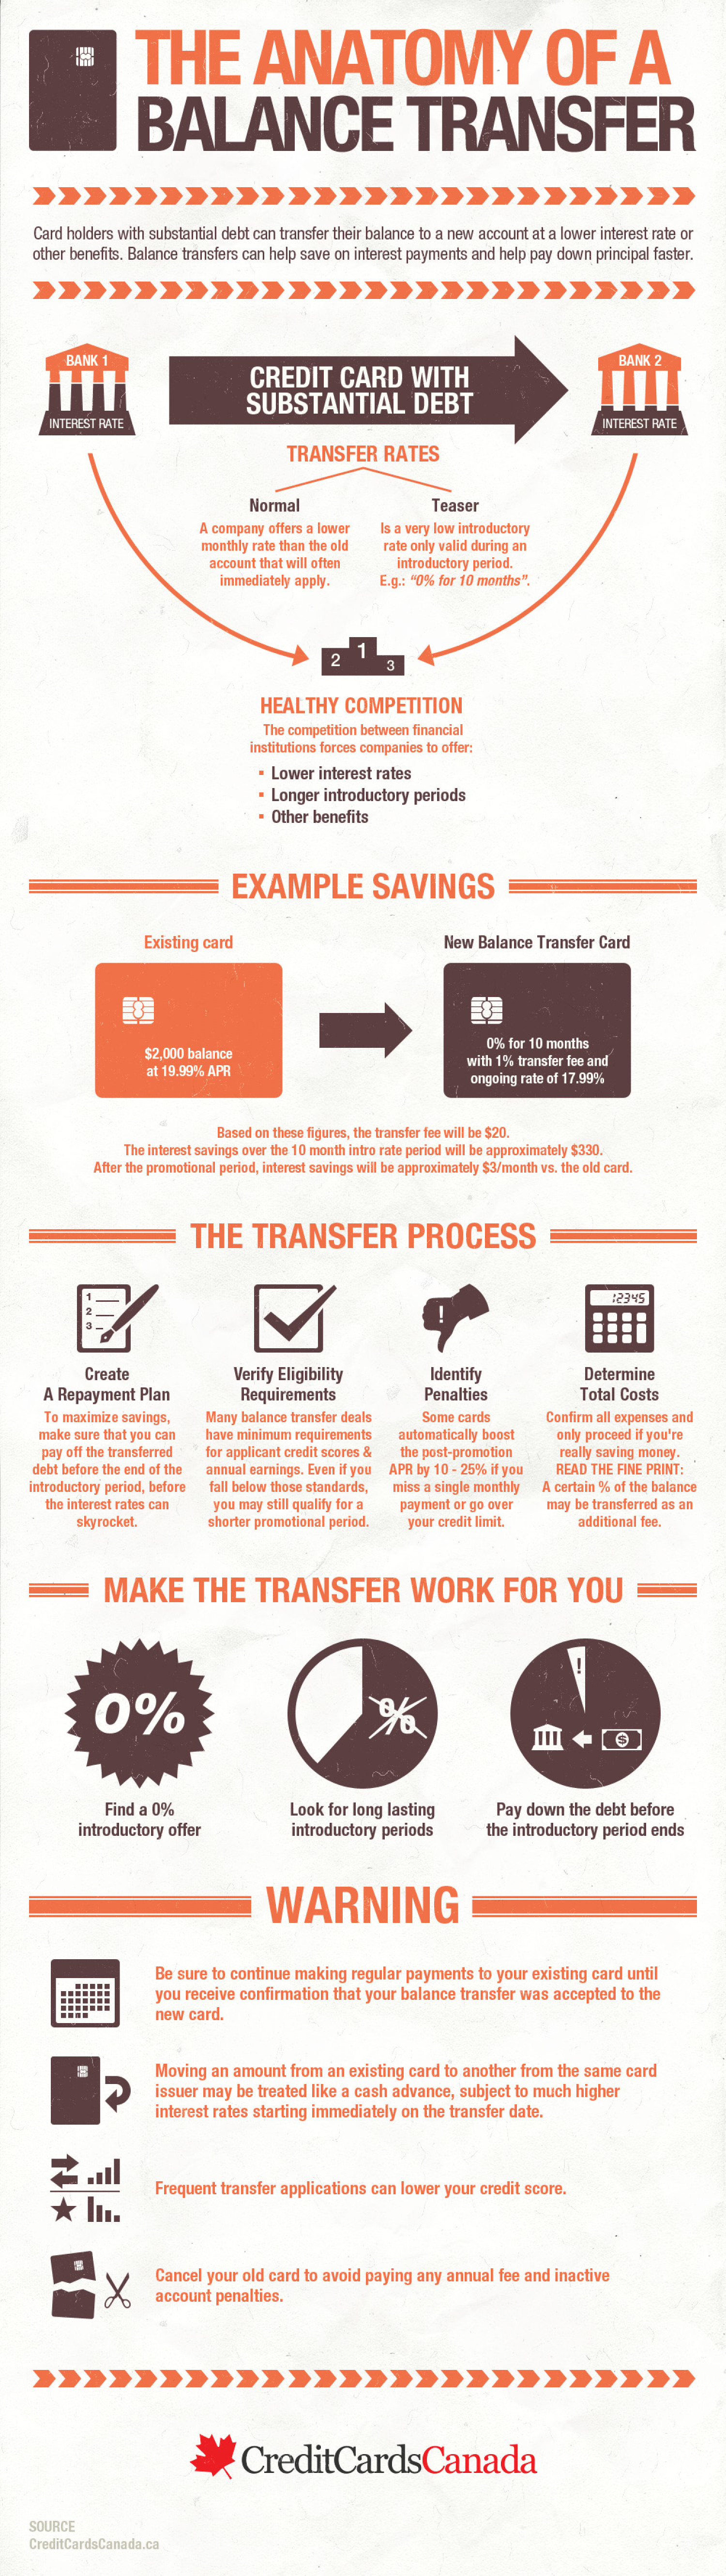 Anatomy of a balance transfer Infographic